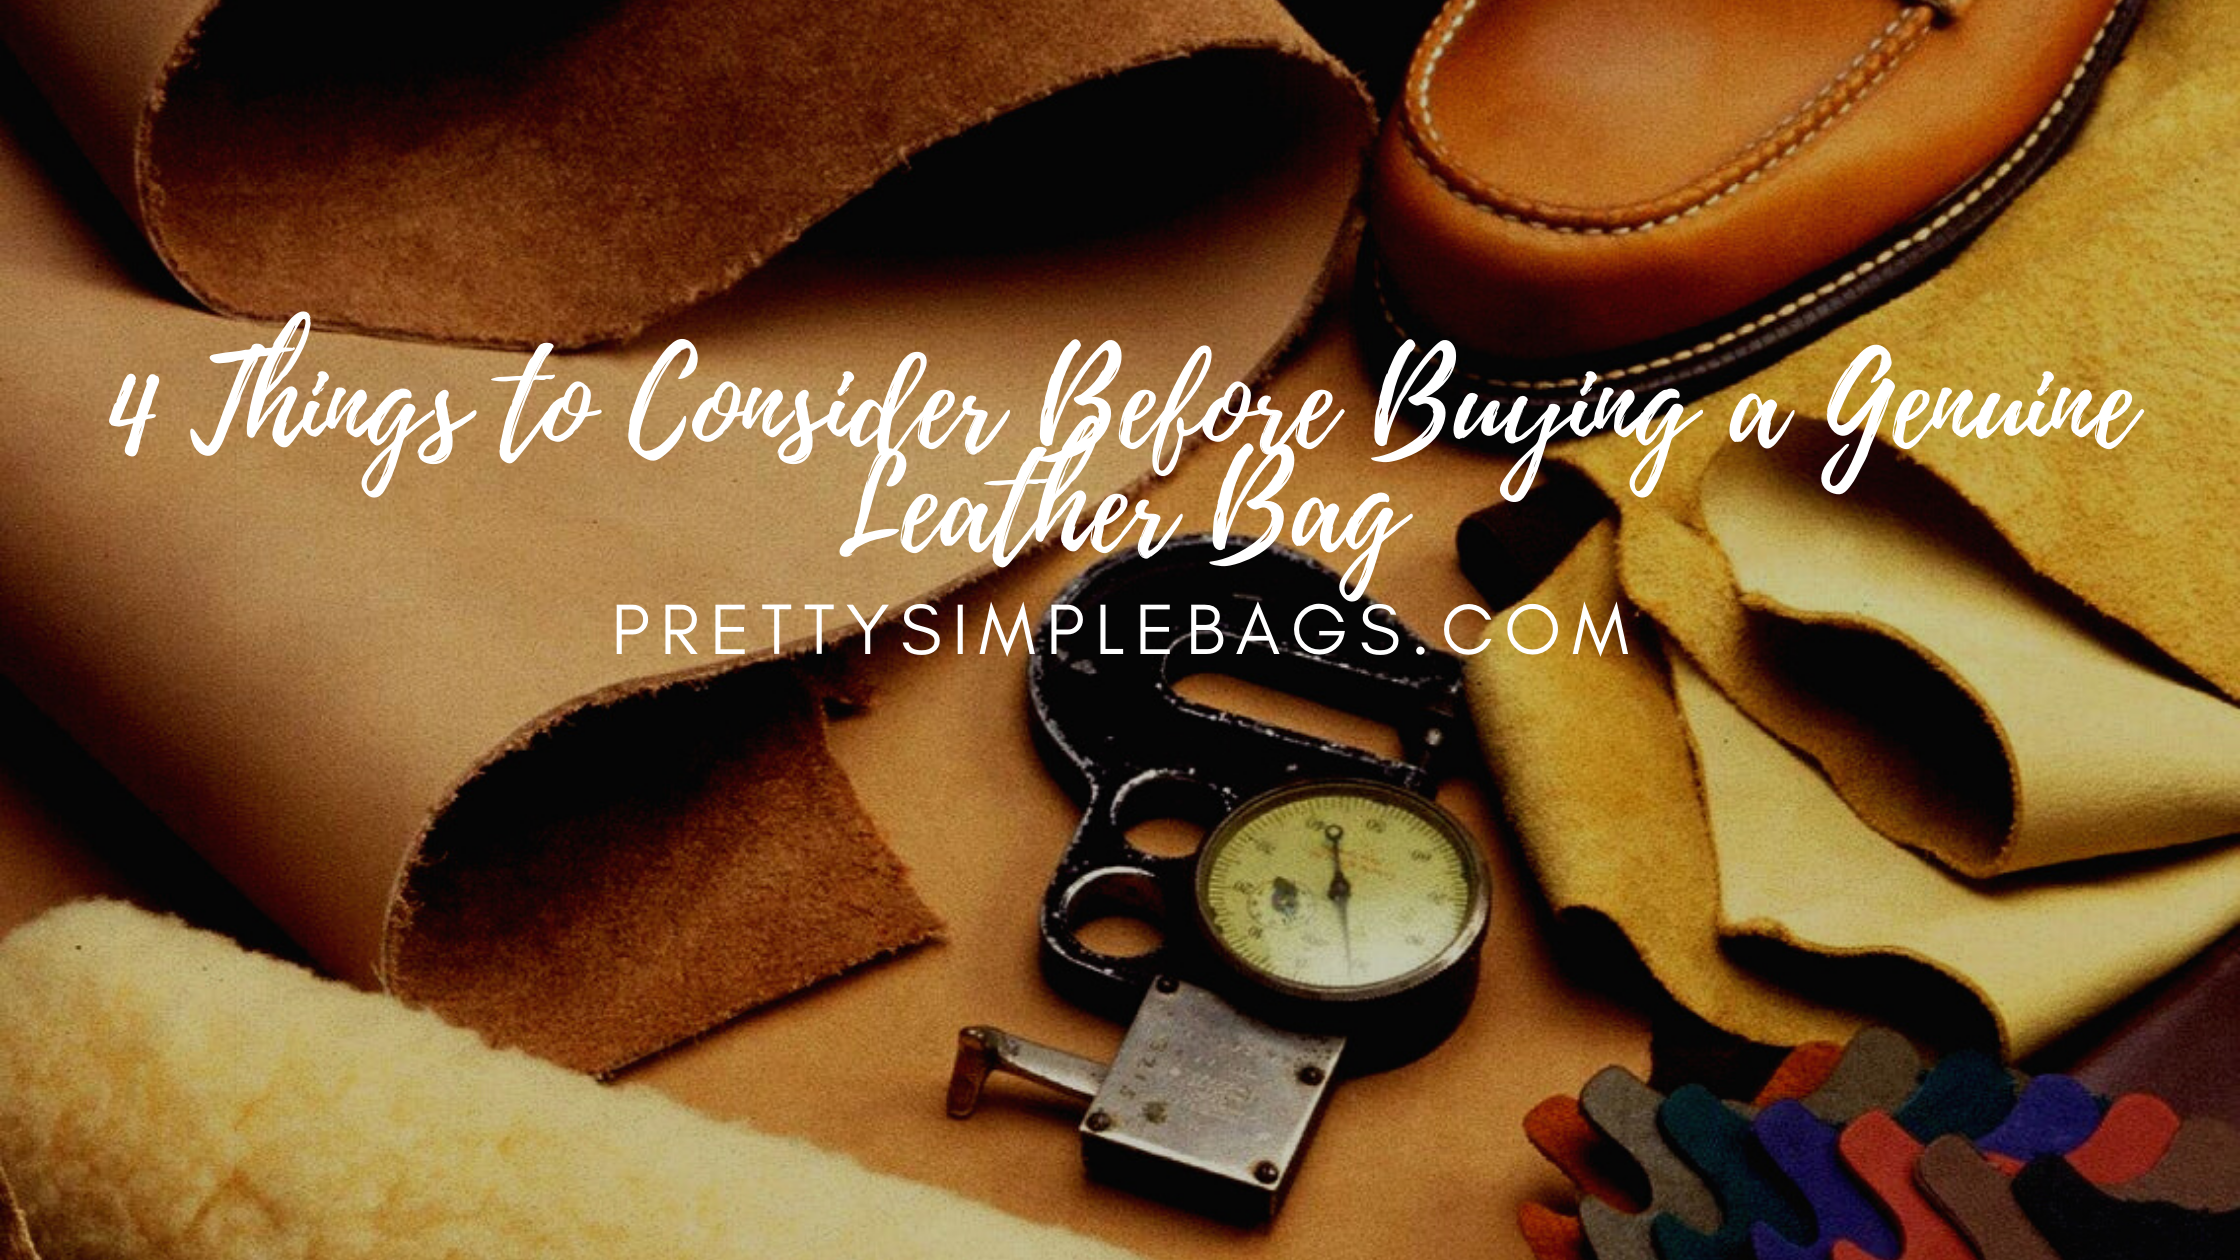 4 things to consider before buying a genuine leather bag